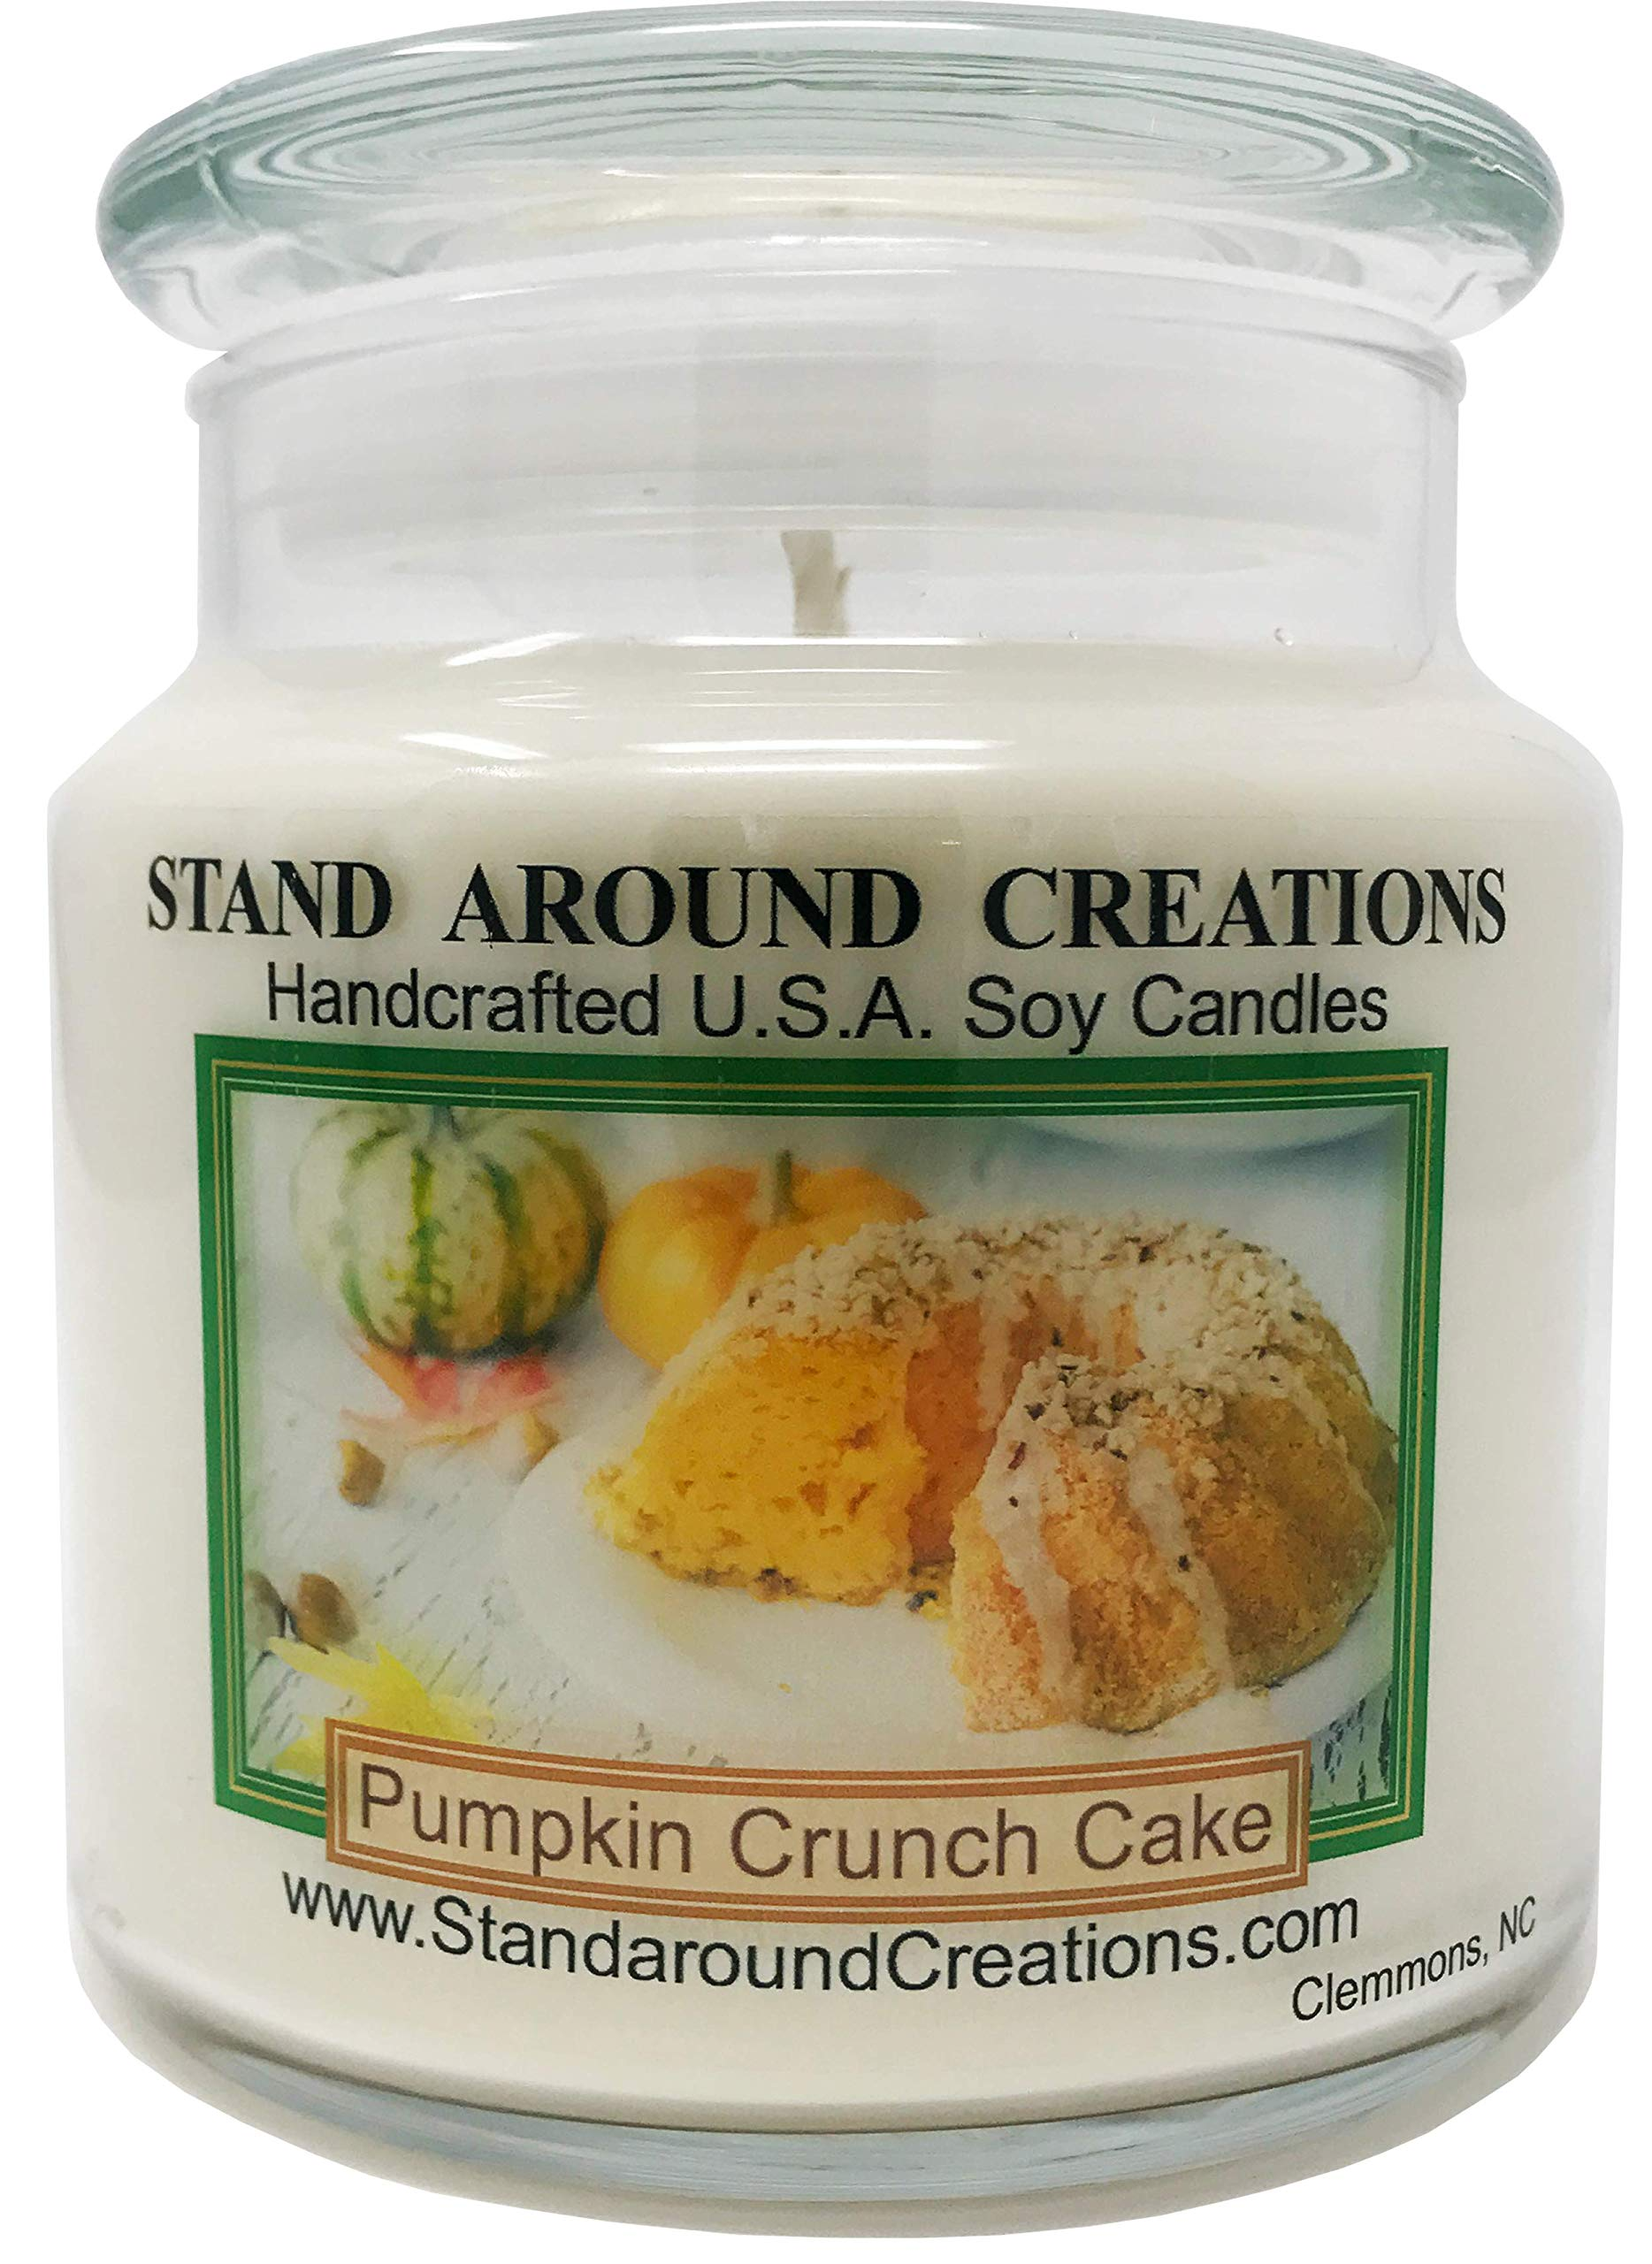 Premium 100% Soy Apothecary Candle - 16 oz. - Scent: Pumpkin Crunch Cake - The aroma of creamy pumpkin pie filling, surrounded w/freshly baked cake, melted butter, pecans, and hints of spice.